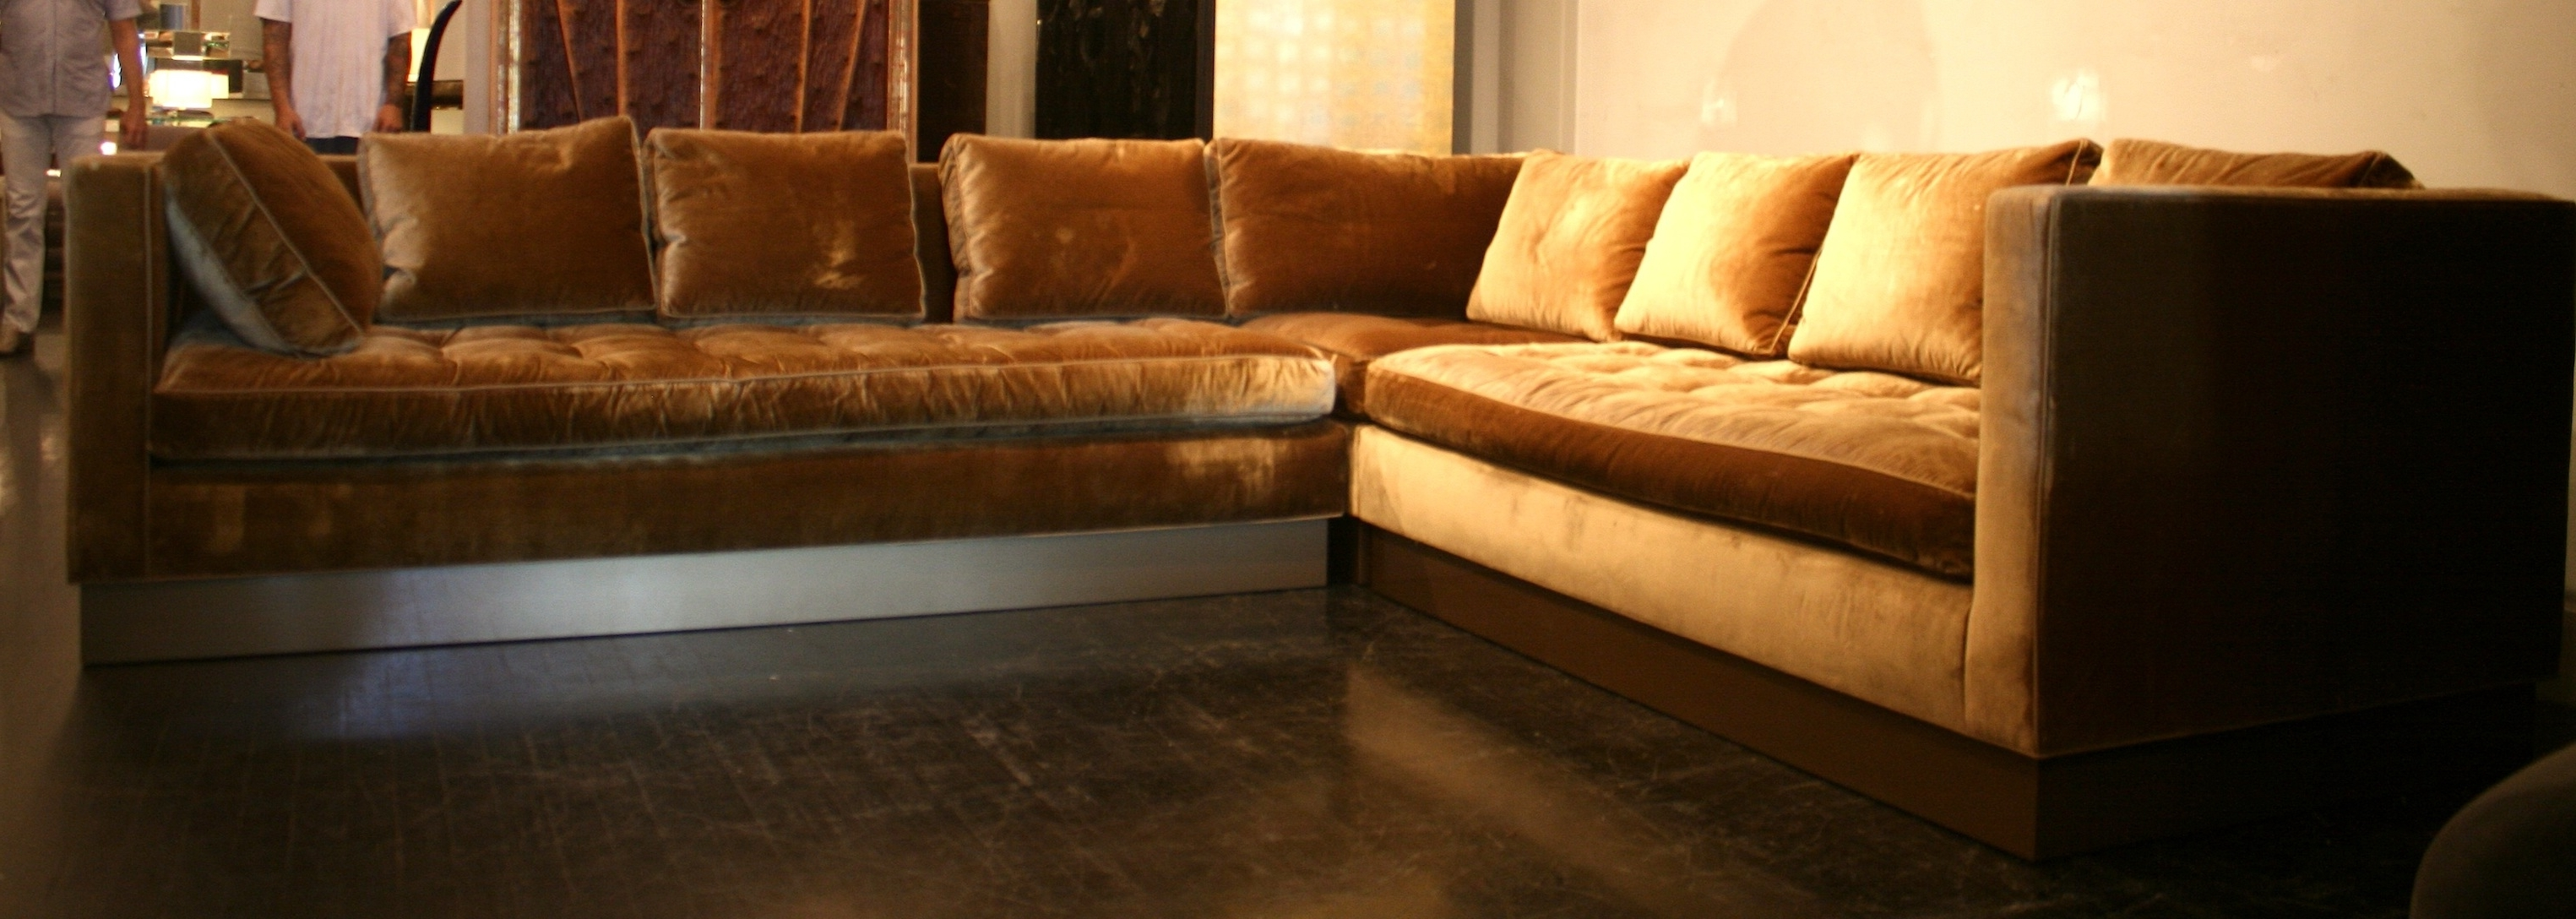 Best And Newest Gold Sectional Sofas Intended For Gold Sectional Sofa (View 8 of 20)